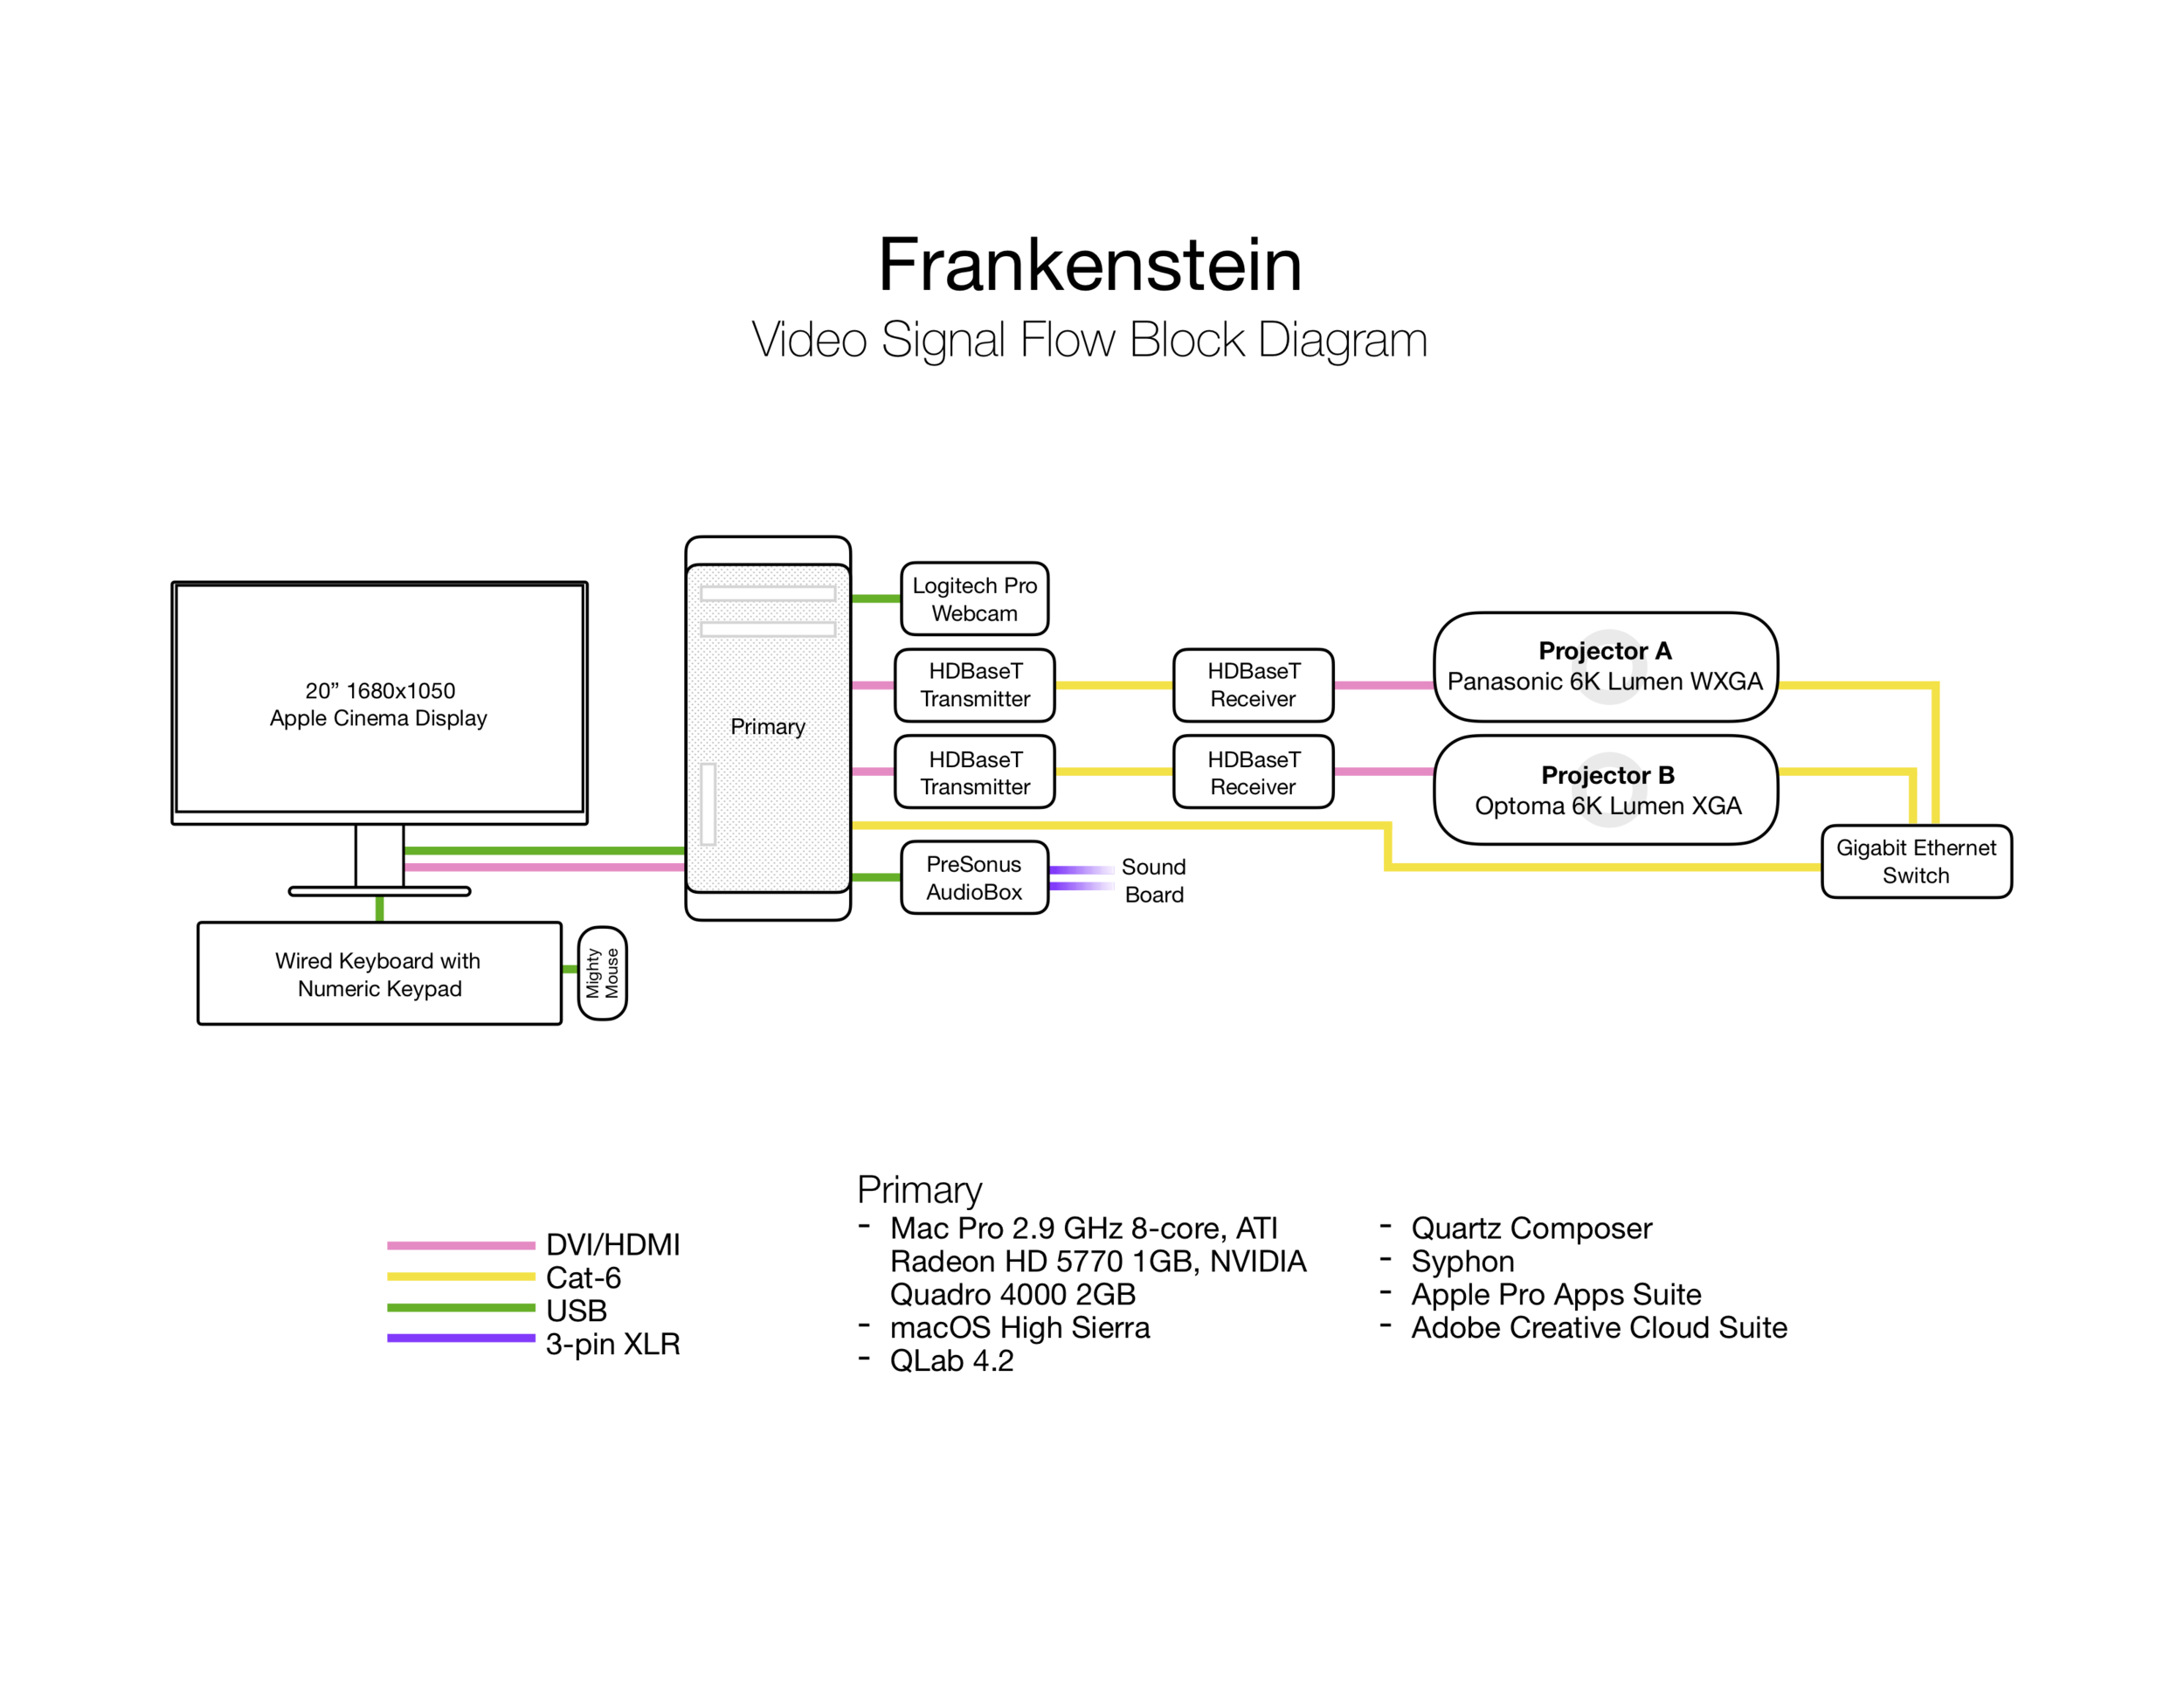 jackson-cobb-design-frankenstein-block-diagram.png